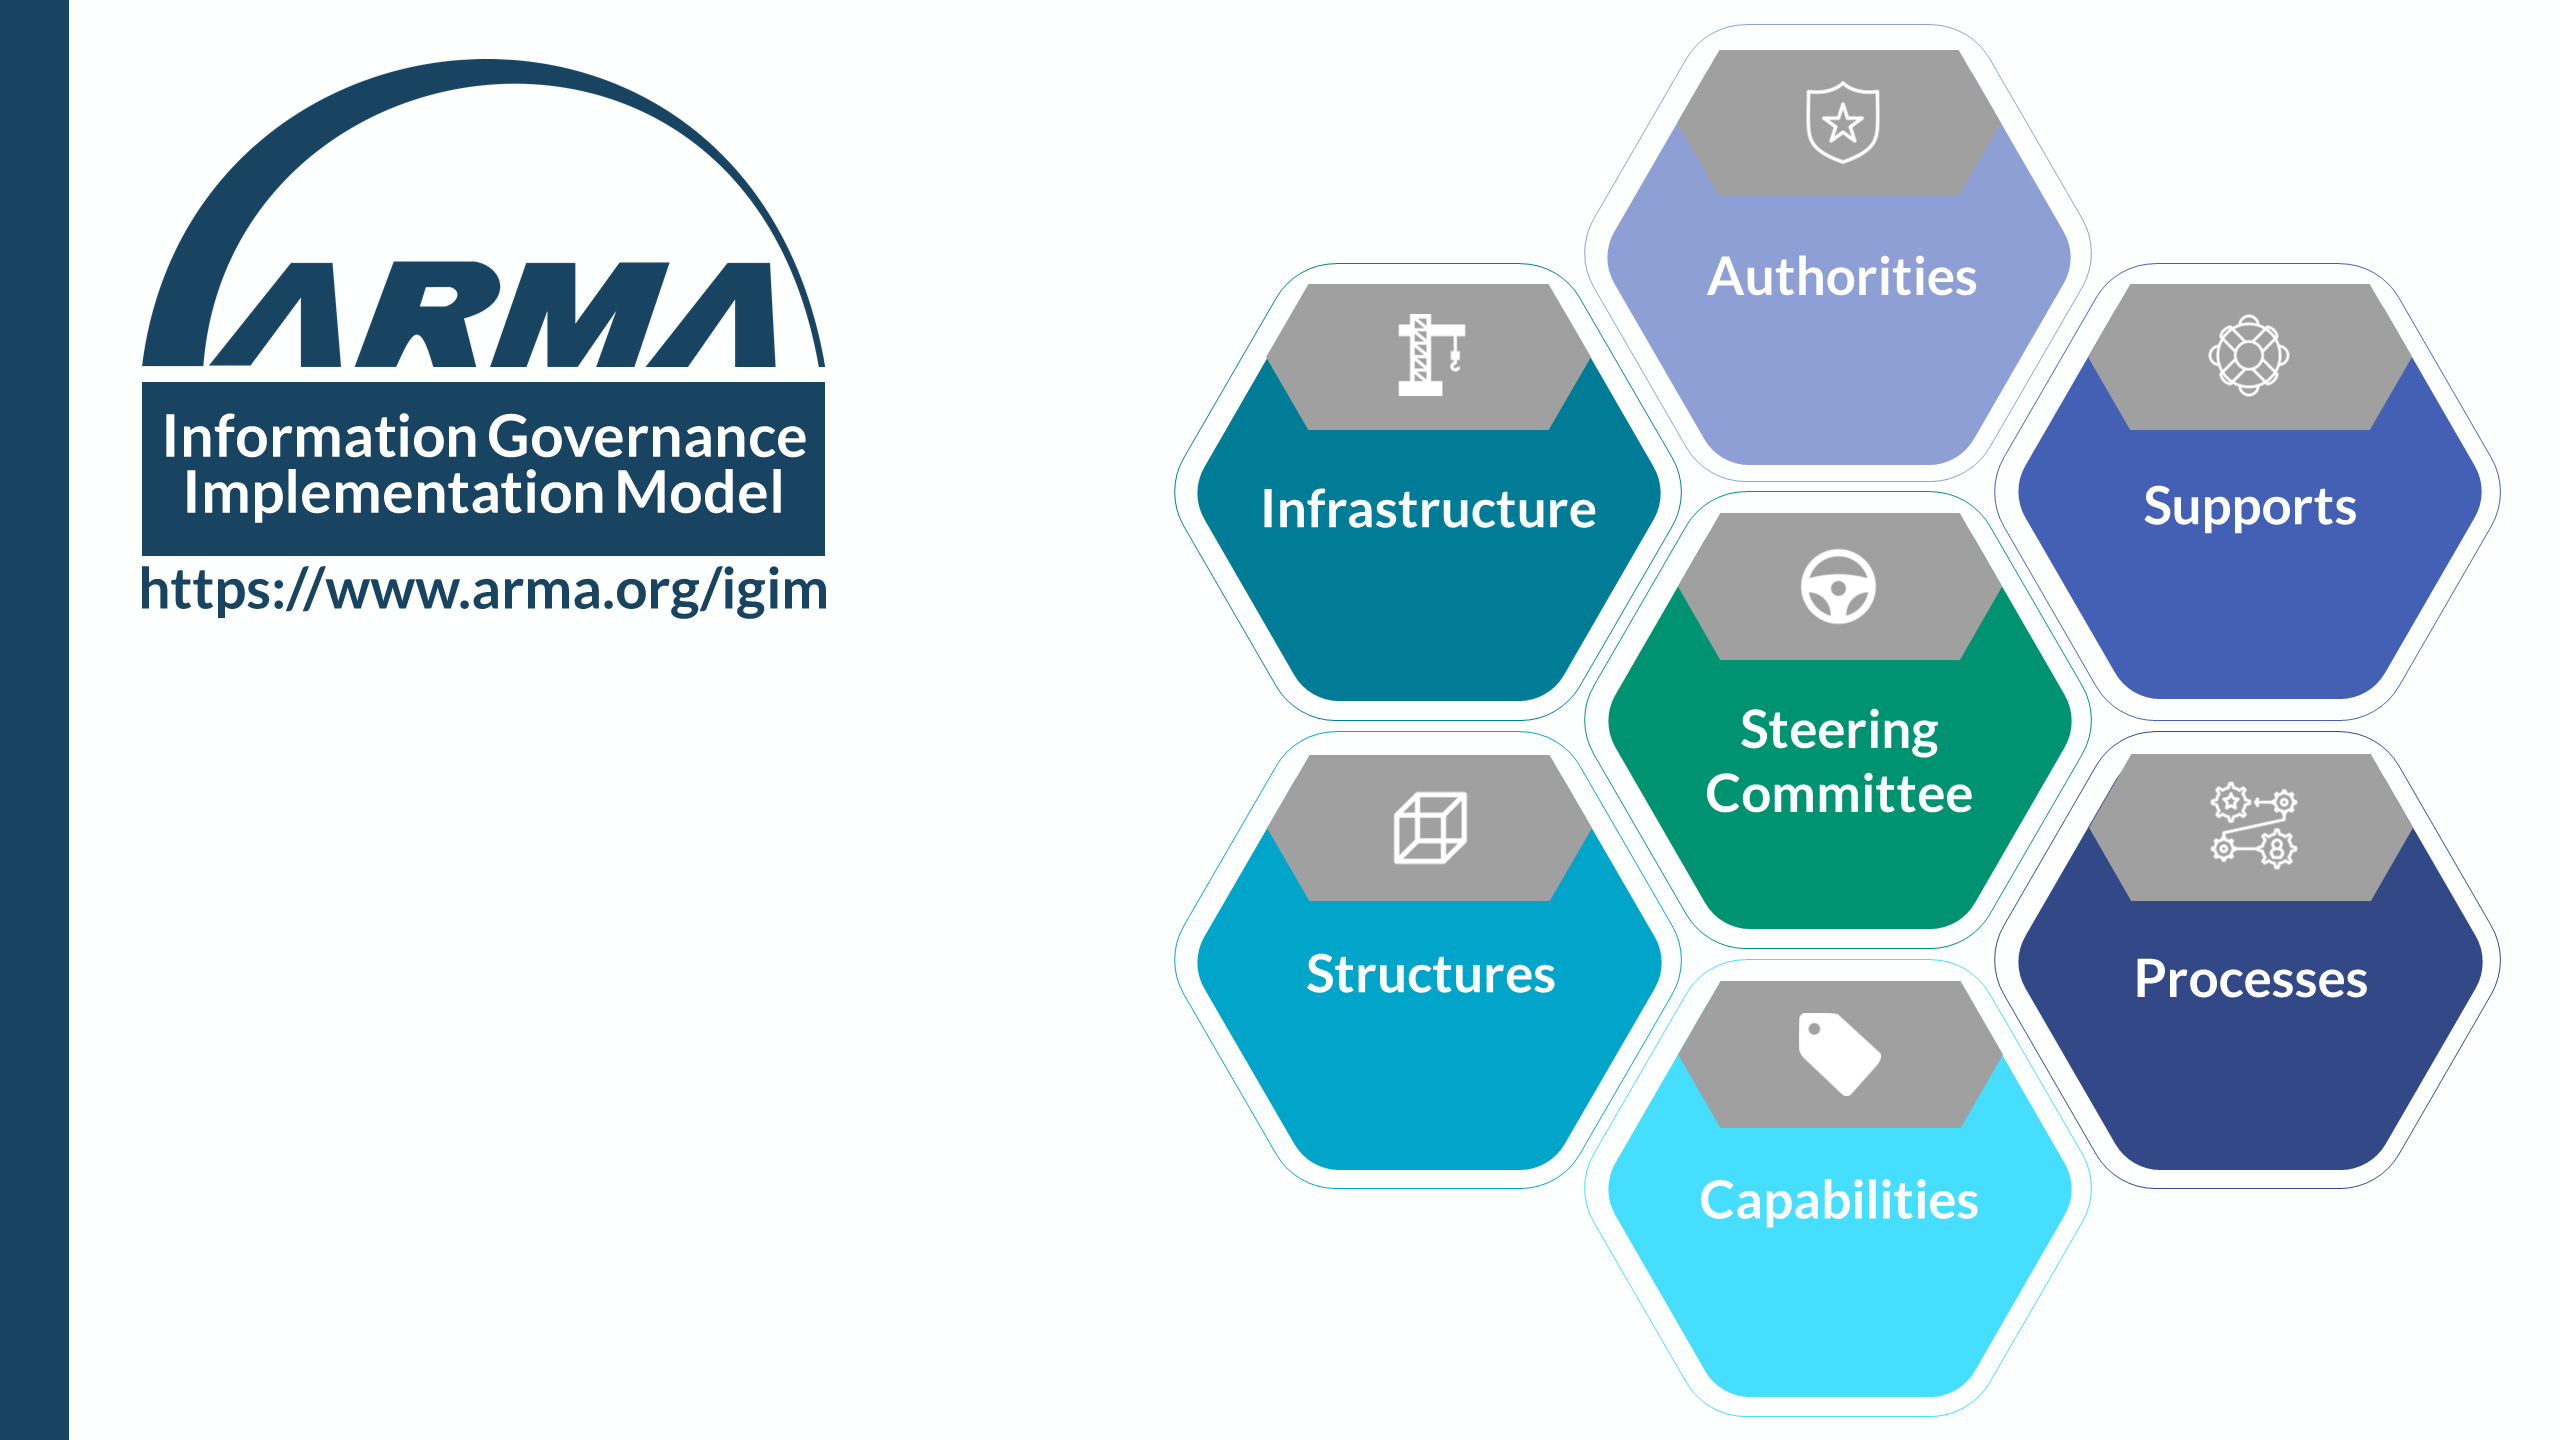 ARMA Information Governance Implementation Model Hive